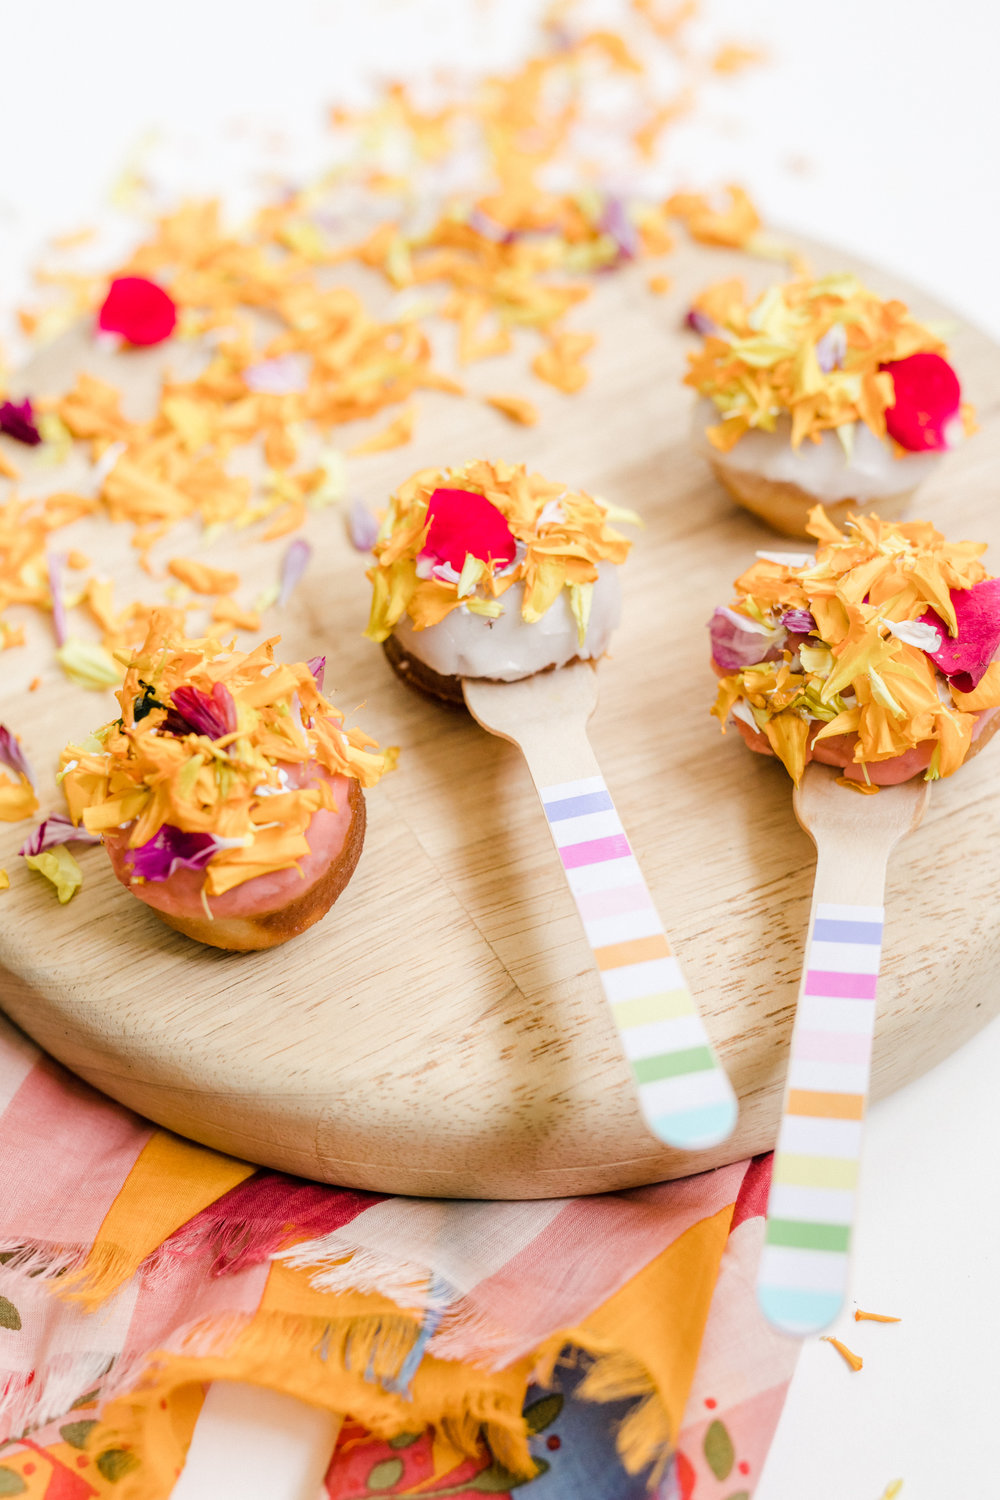 Floral Donut Hole on a Stick - Anna Delores.jpg